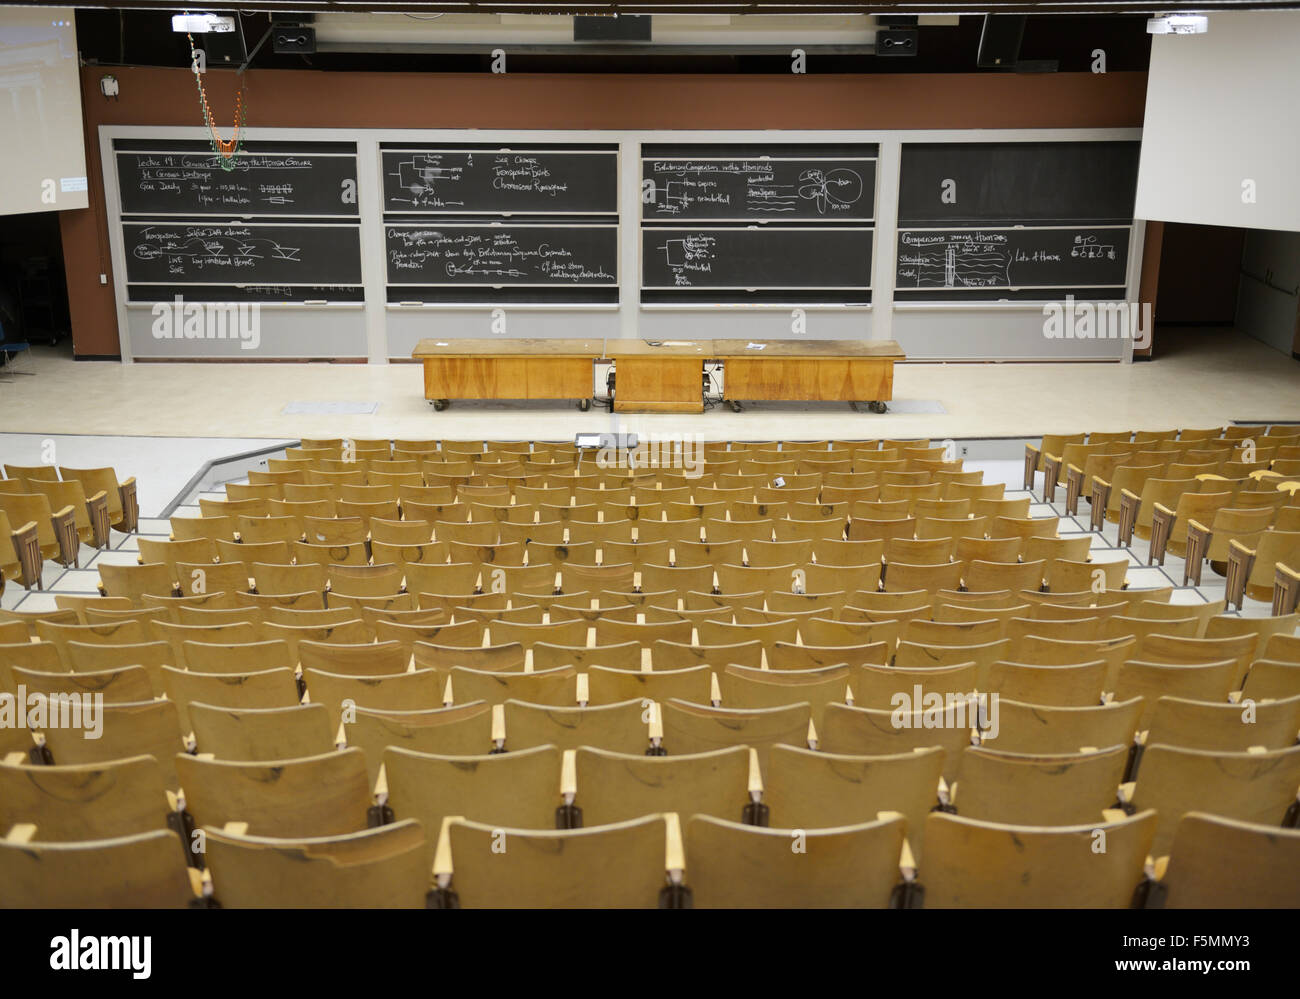 University lecture hall - Stock Image